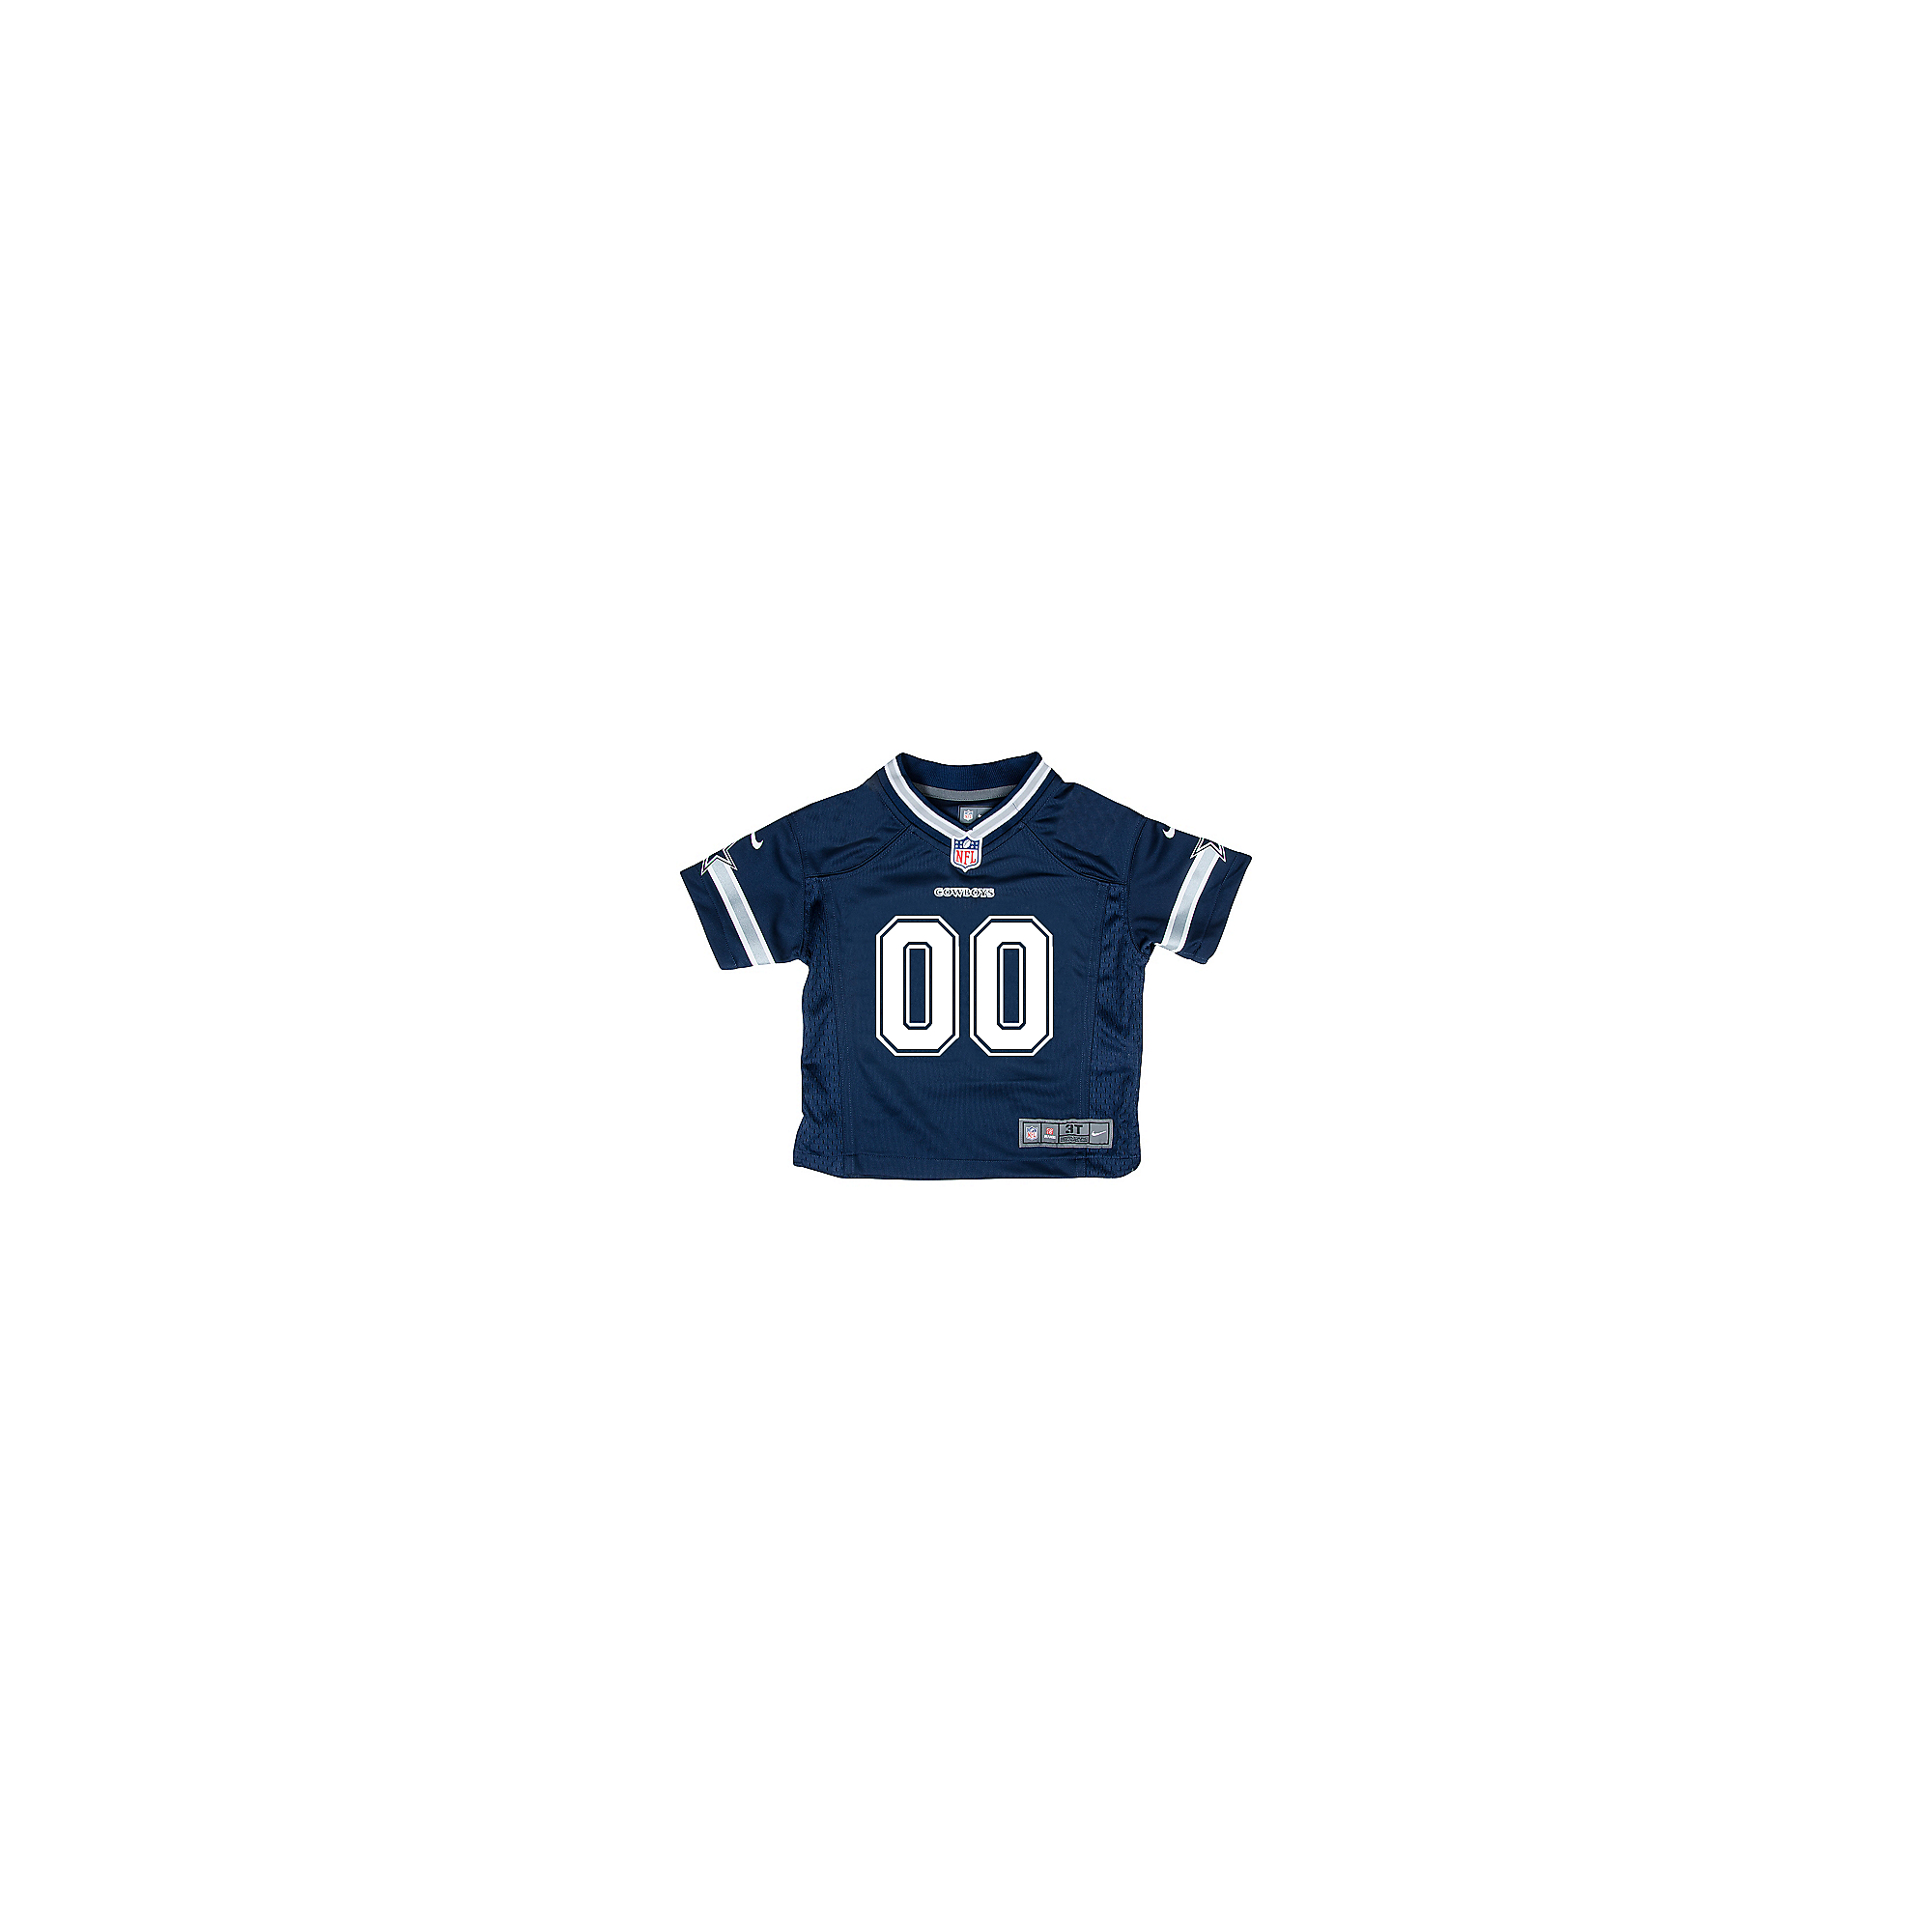 low priced e19d0 0219e Dallas Cowboys Toddler Custom Nike Navy Game Replica Jersey | Dallas  Cowboys Pro Shop